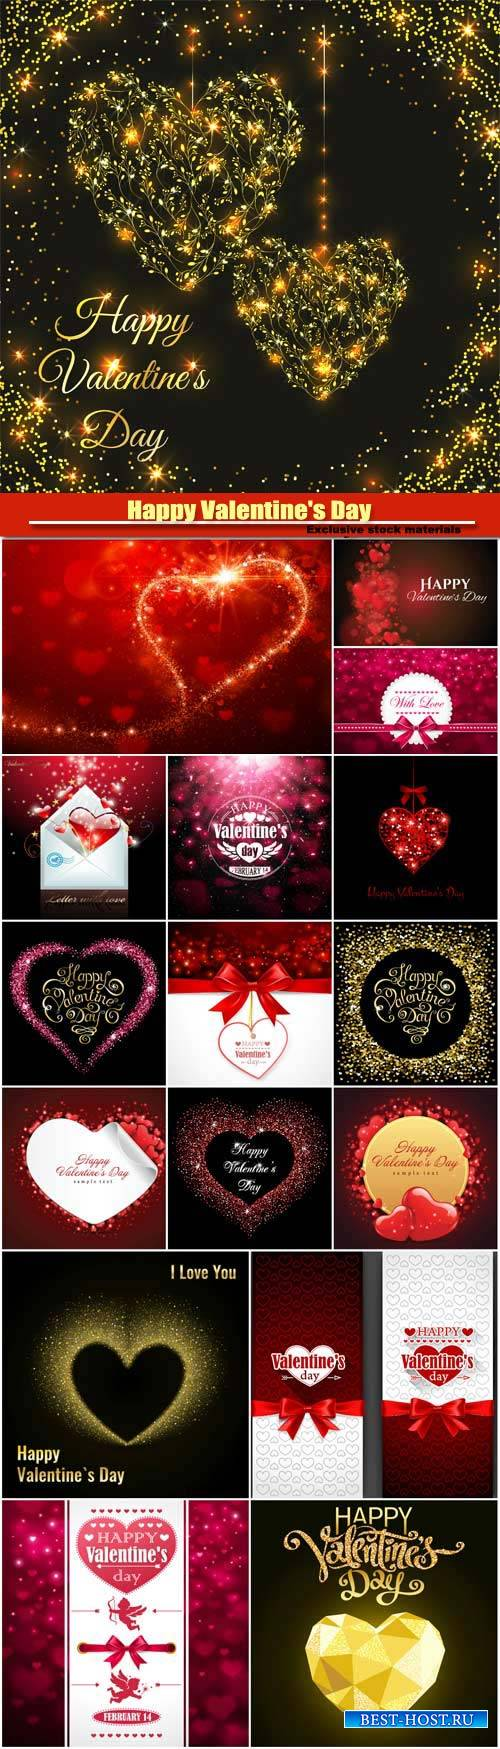 Happy Valentine's Day vector, hearts, romance, love #12